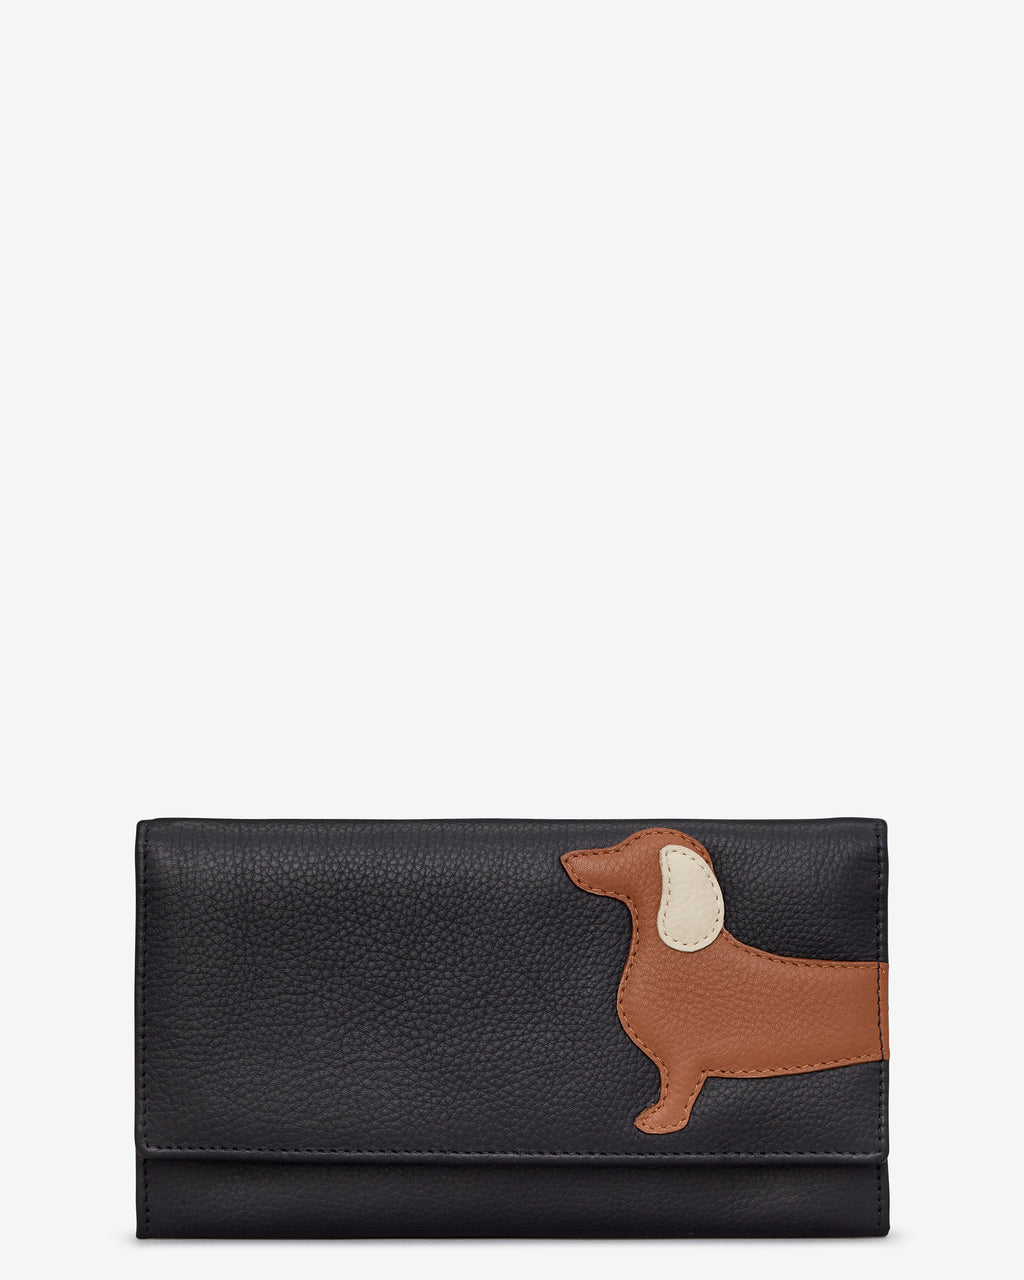 Digby The Dachshund Flap Over Leather Matinee Purse